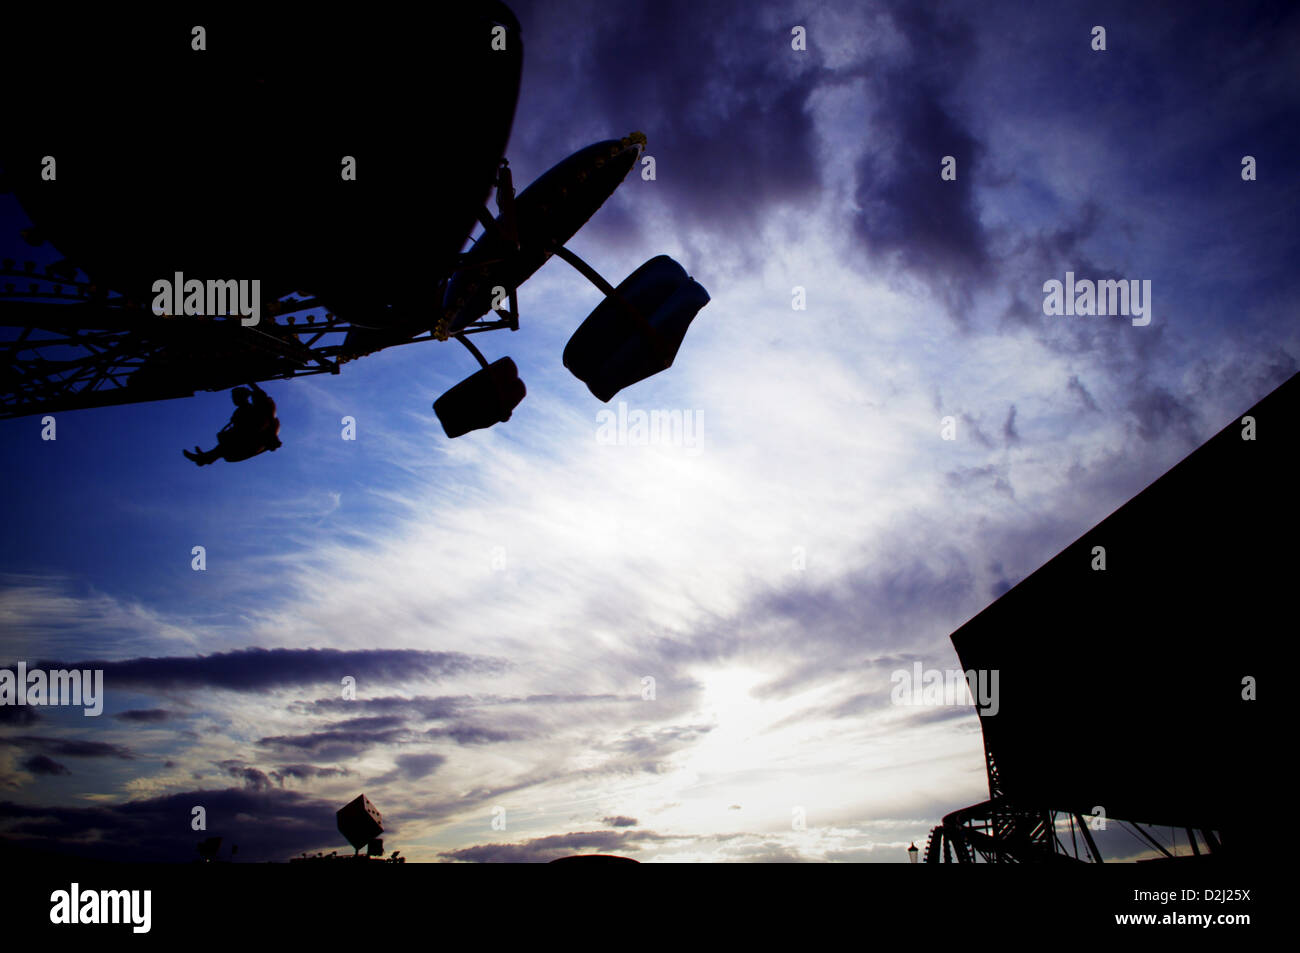 Skyward with our Dreams - Stock Image